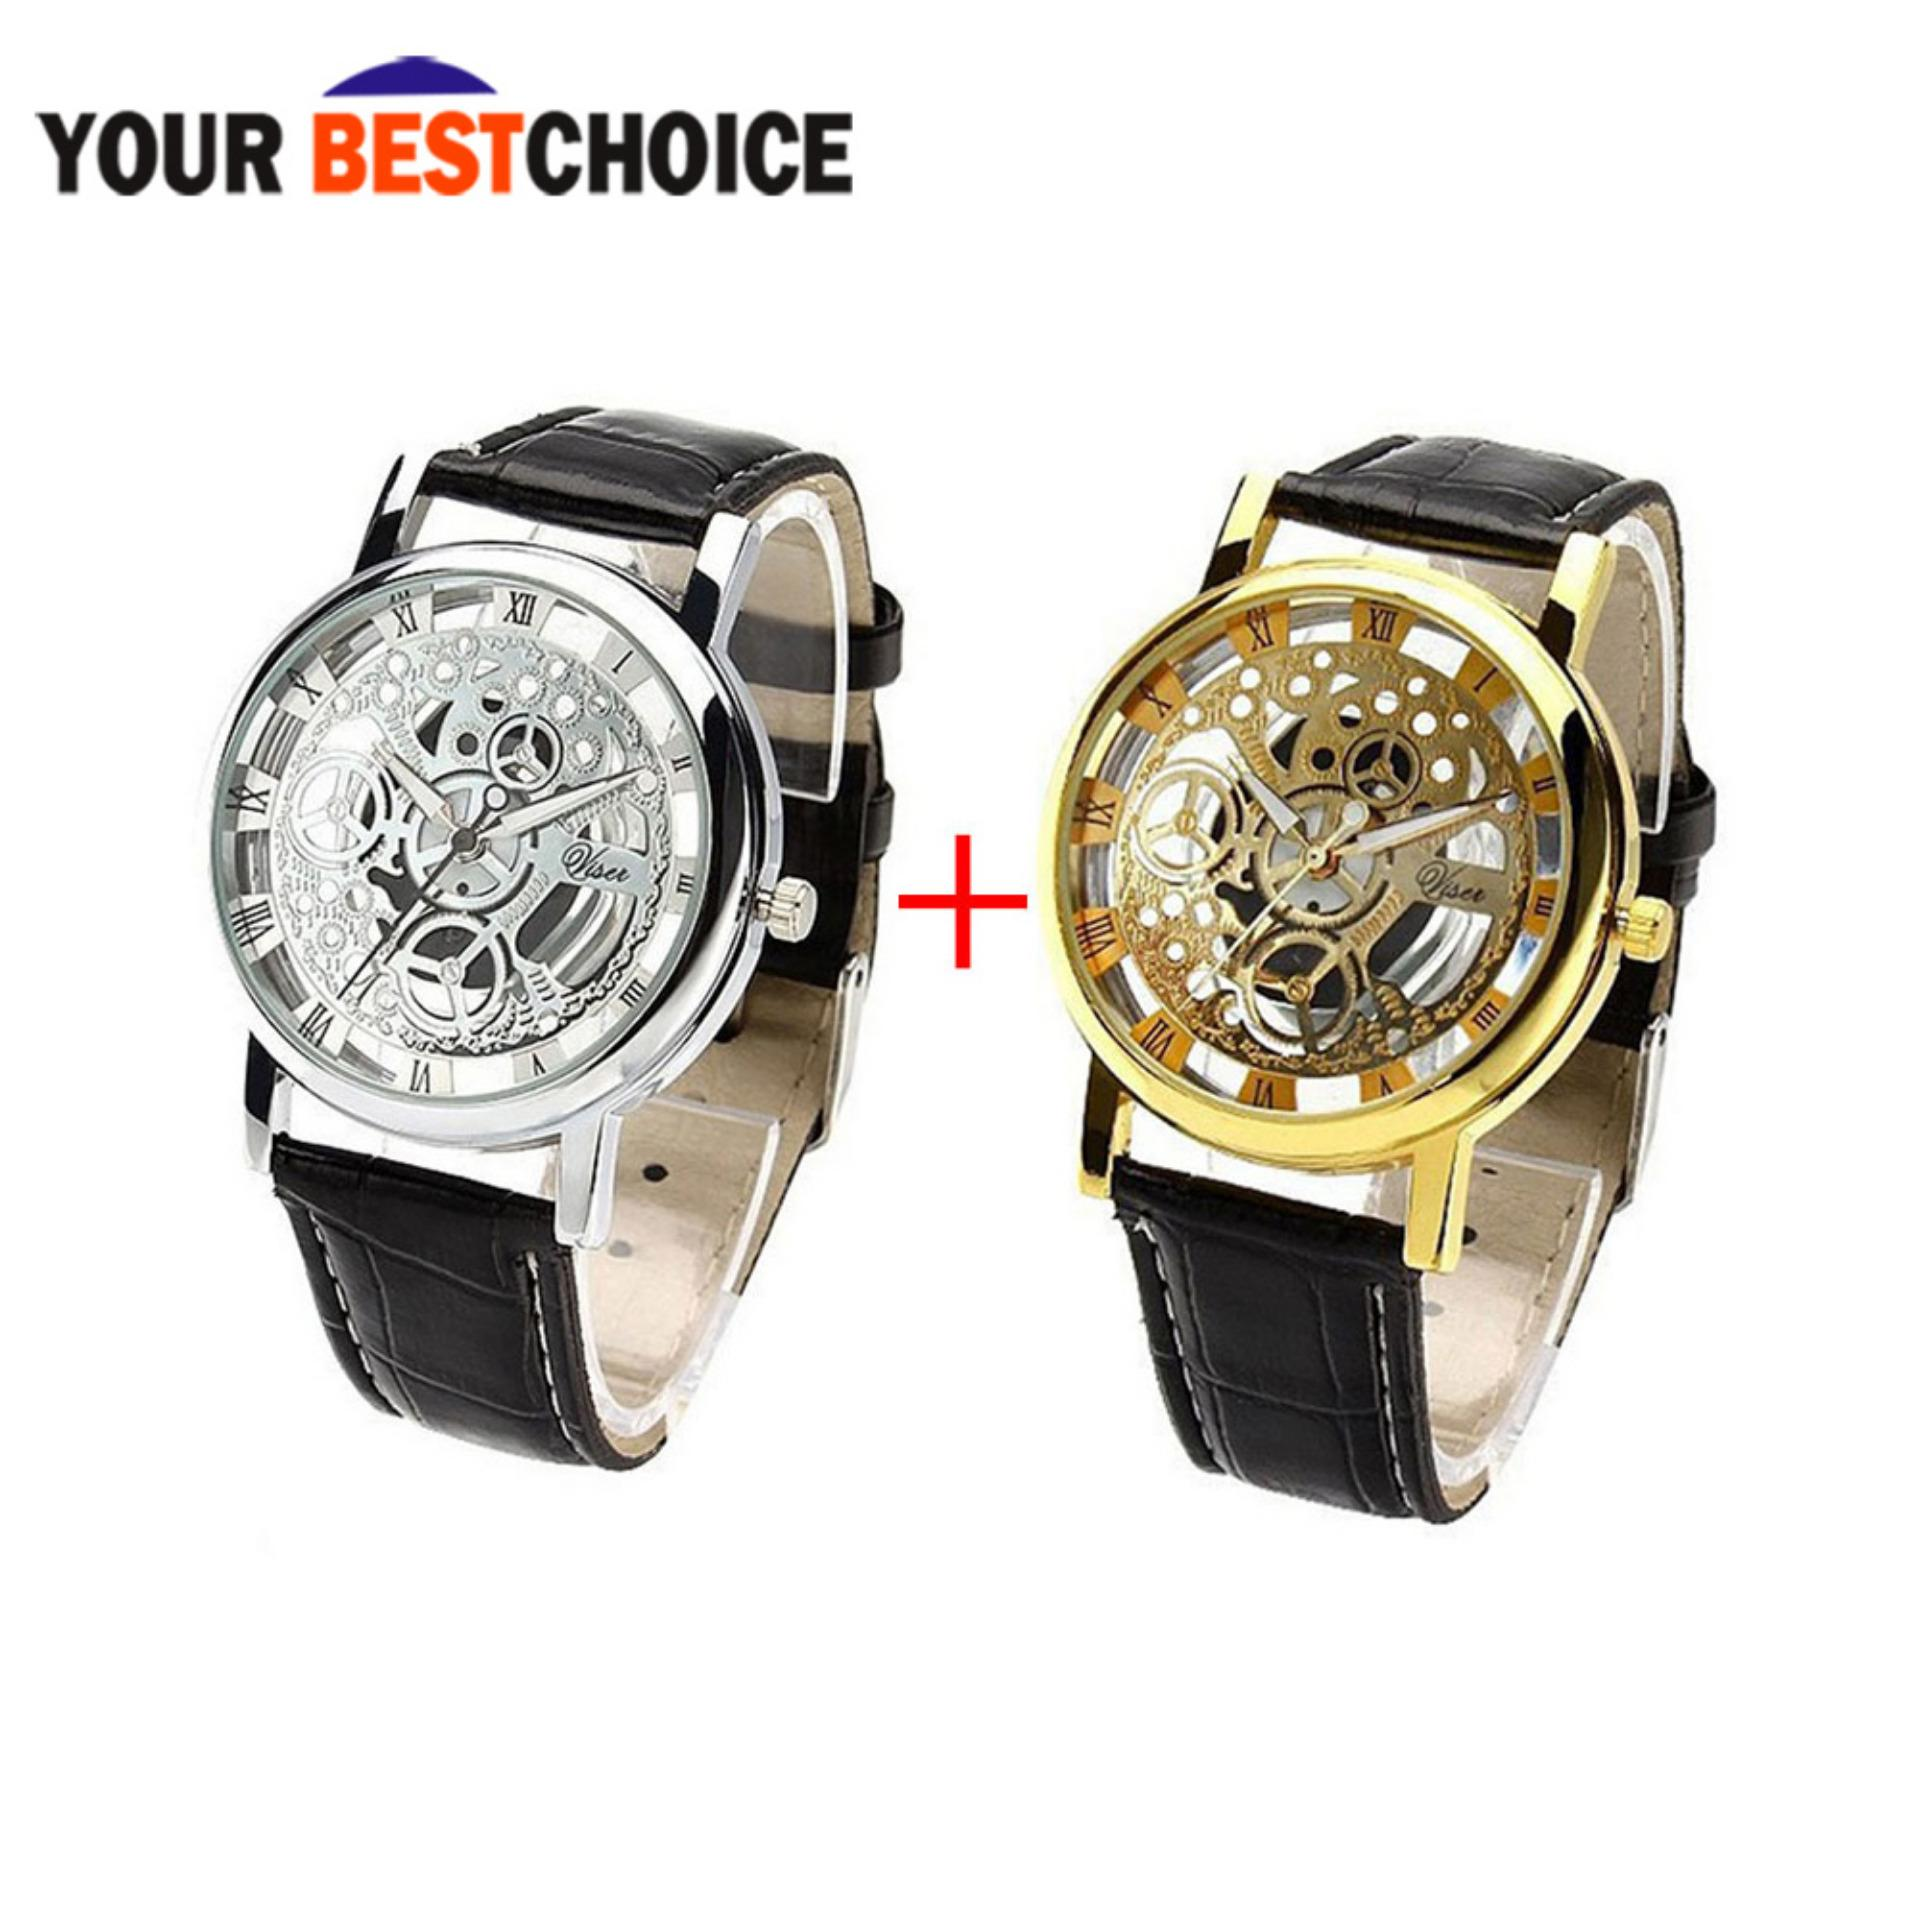 YBC 1 Pair Fashion Non Mechanical Hollow Couple Watch With Imitation Leather Band Strap Black product preview, discount at cheapest price